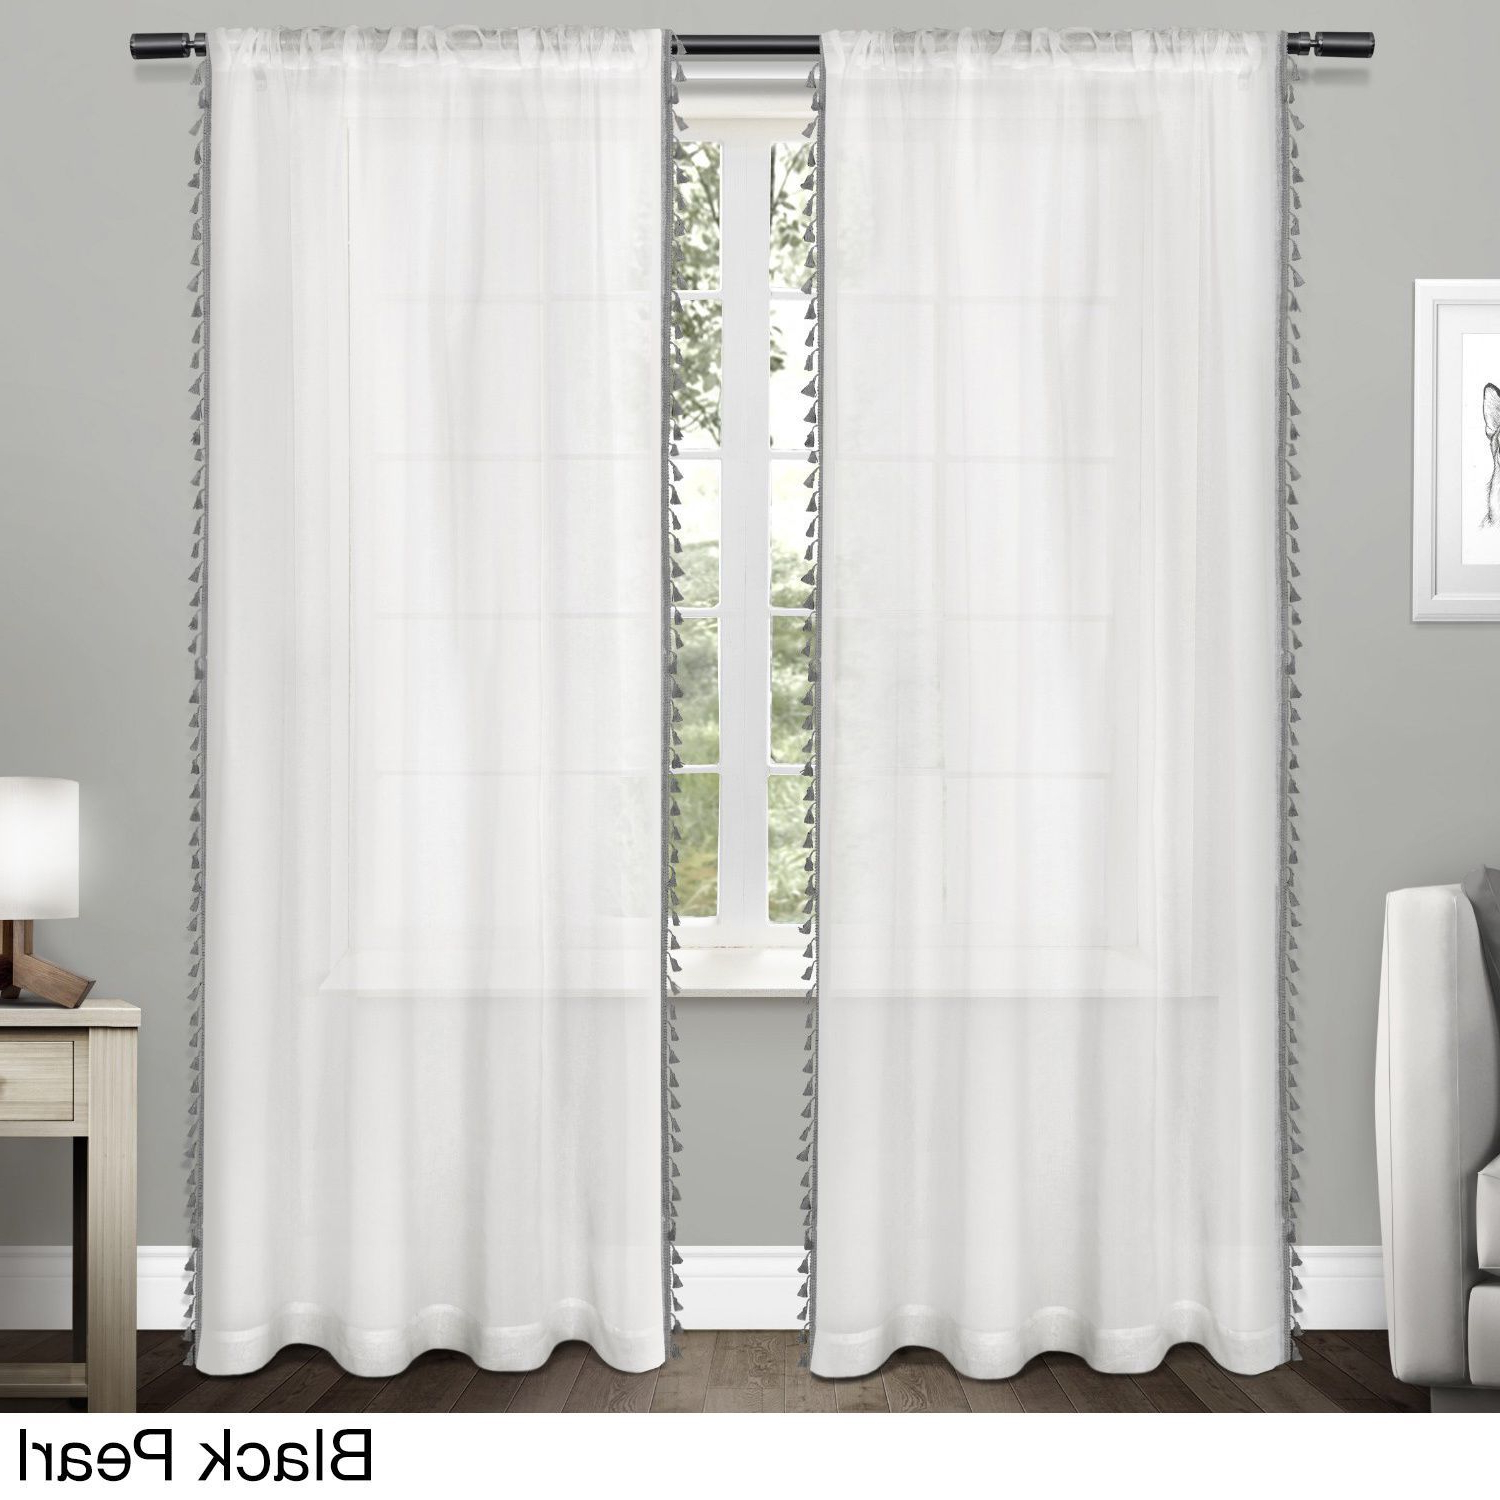 Ati Home Rod Pocket Curtain Panel Pair With Tassels (Tassels In Most Recently Released Tassels Applique Sheer Rod Pocket Top Curtain Panel Pairs (View 1 of 20)